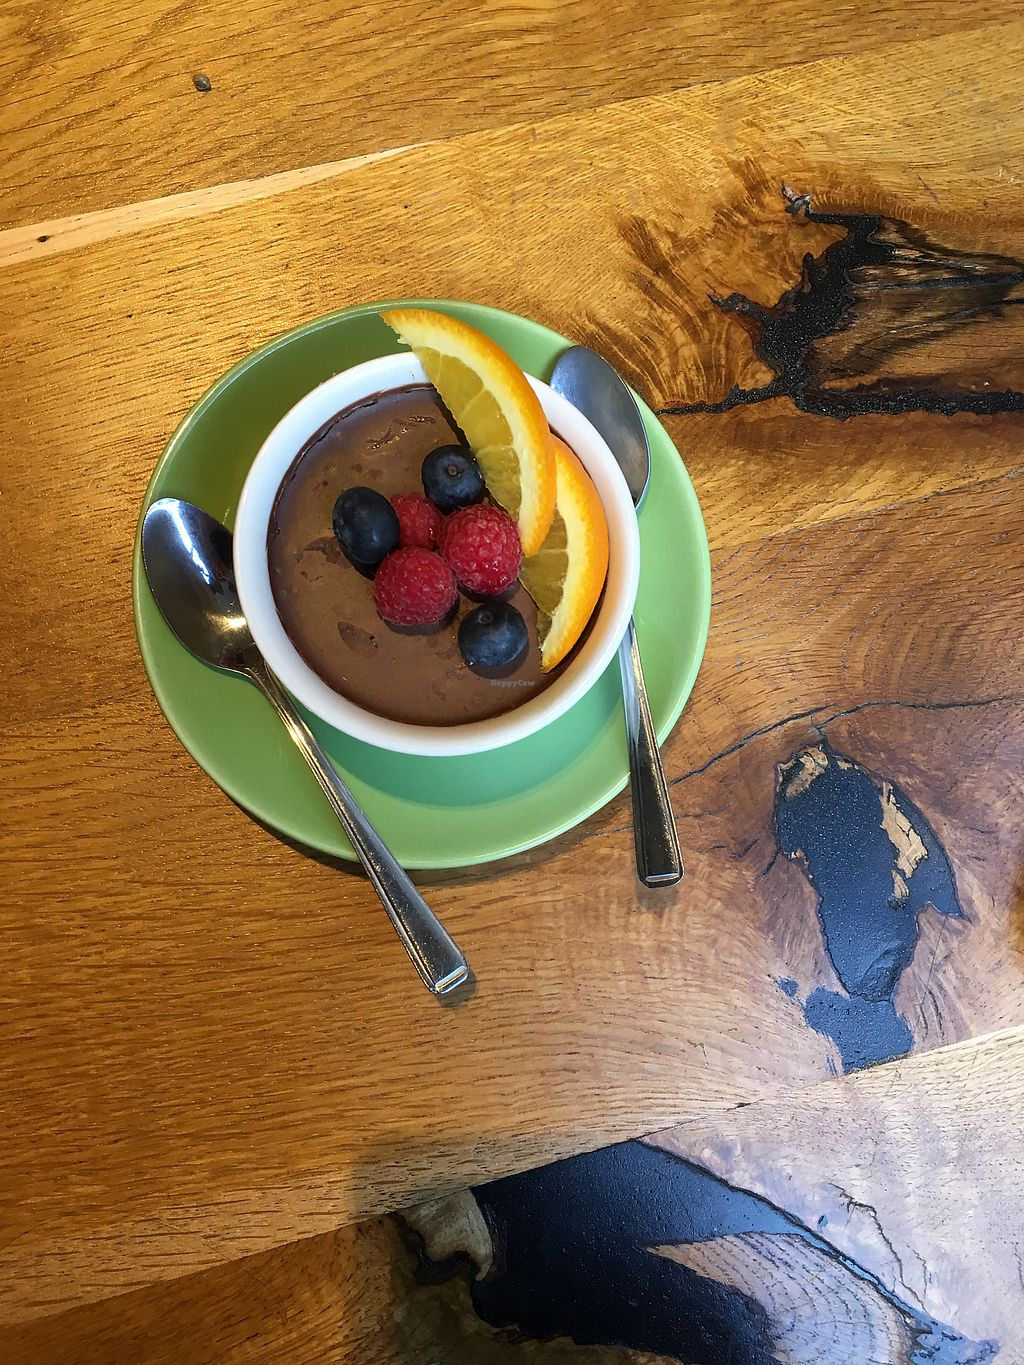 """Photo of Henderson's Vegan  by <a href=""""/members/profile/xveganladyx"""">xveganladyx</a> <br/>Chocolate Mousse <br/> February 10, 2018  - <a href='/contact/abuse/image/59873/357356'>Report</a>"""